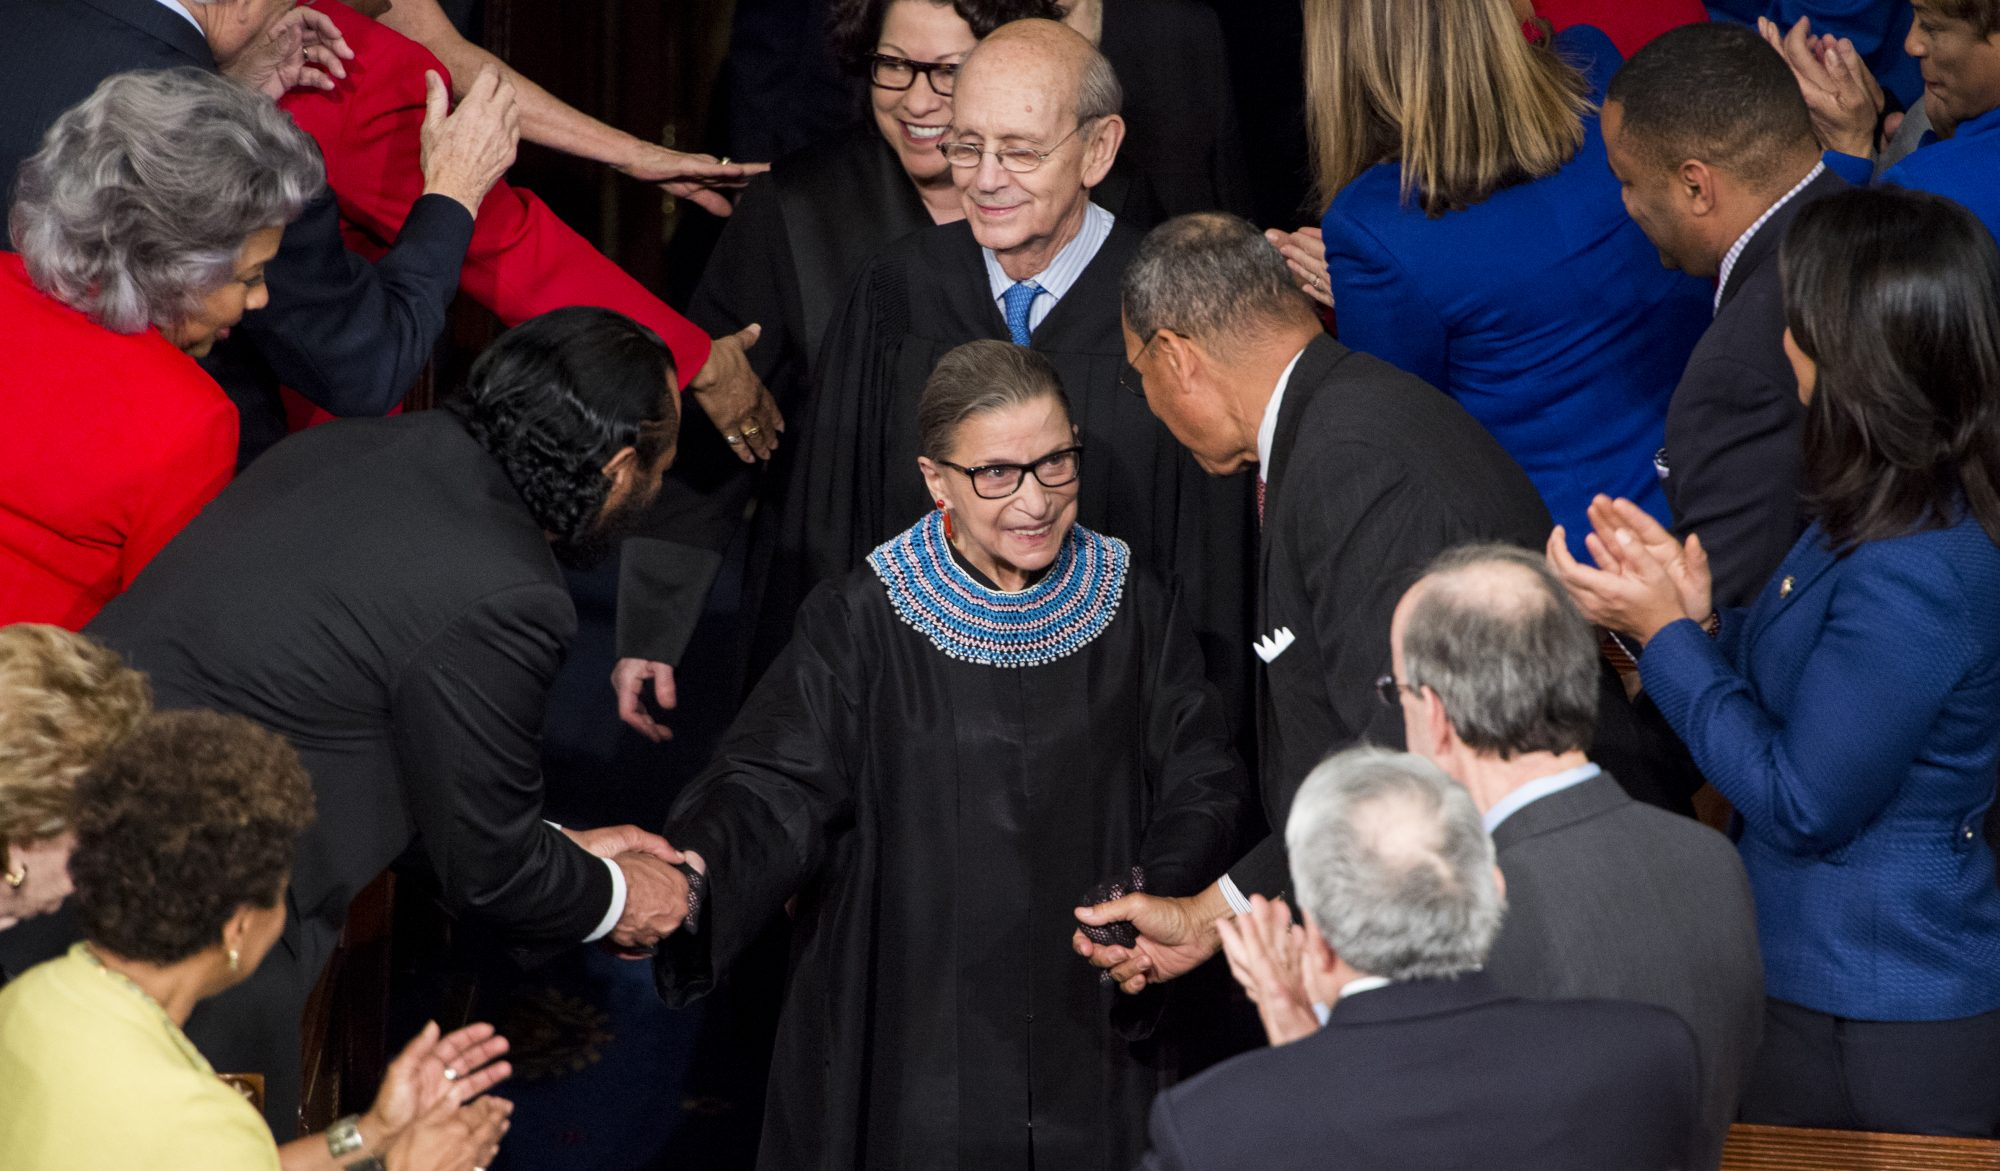 Photo of Supreme Court Justice Ruth Bader Ginsburg Arriving at the State of the Union